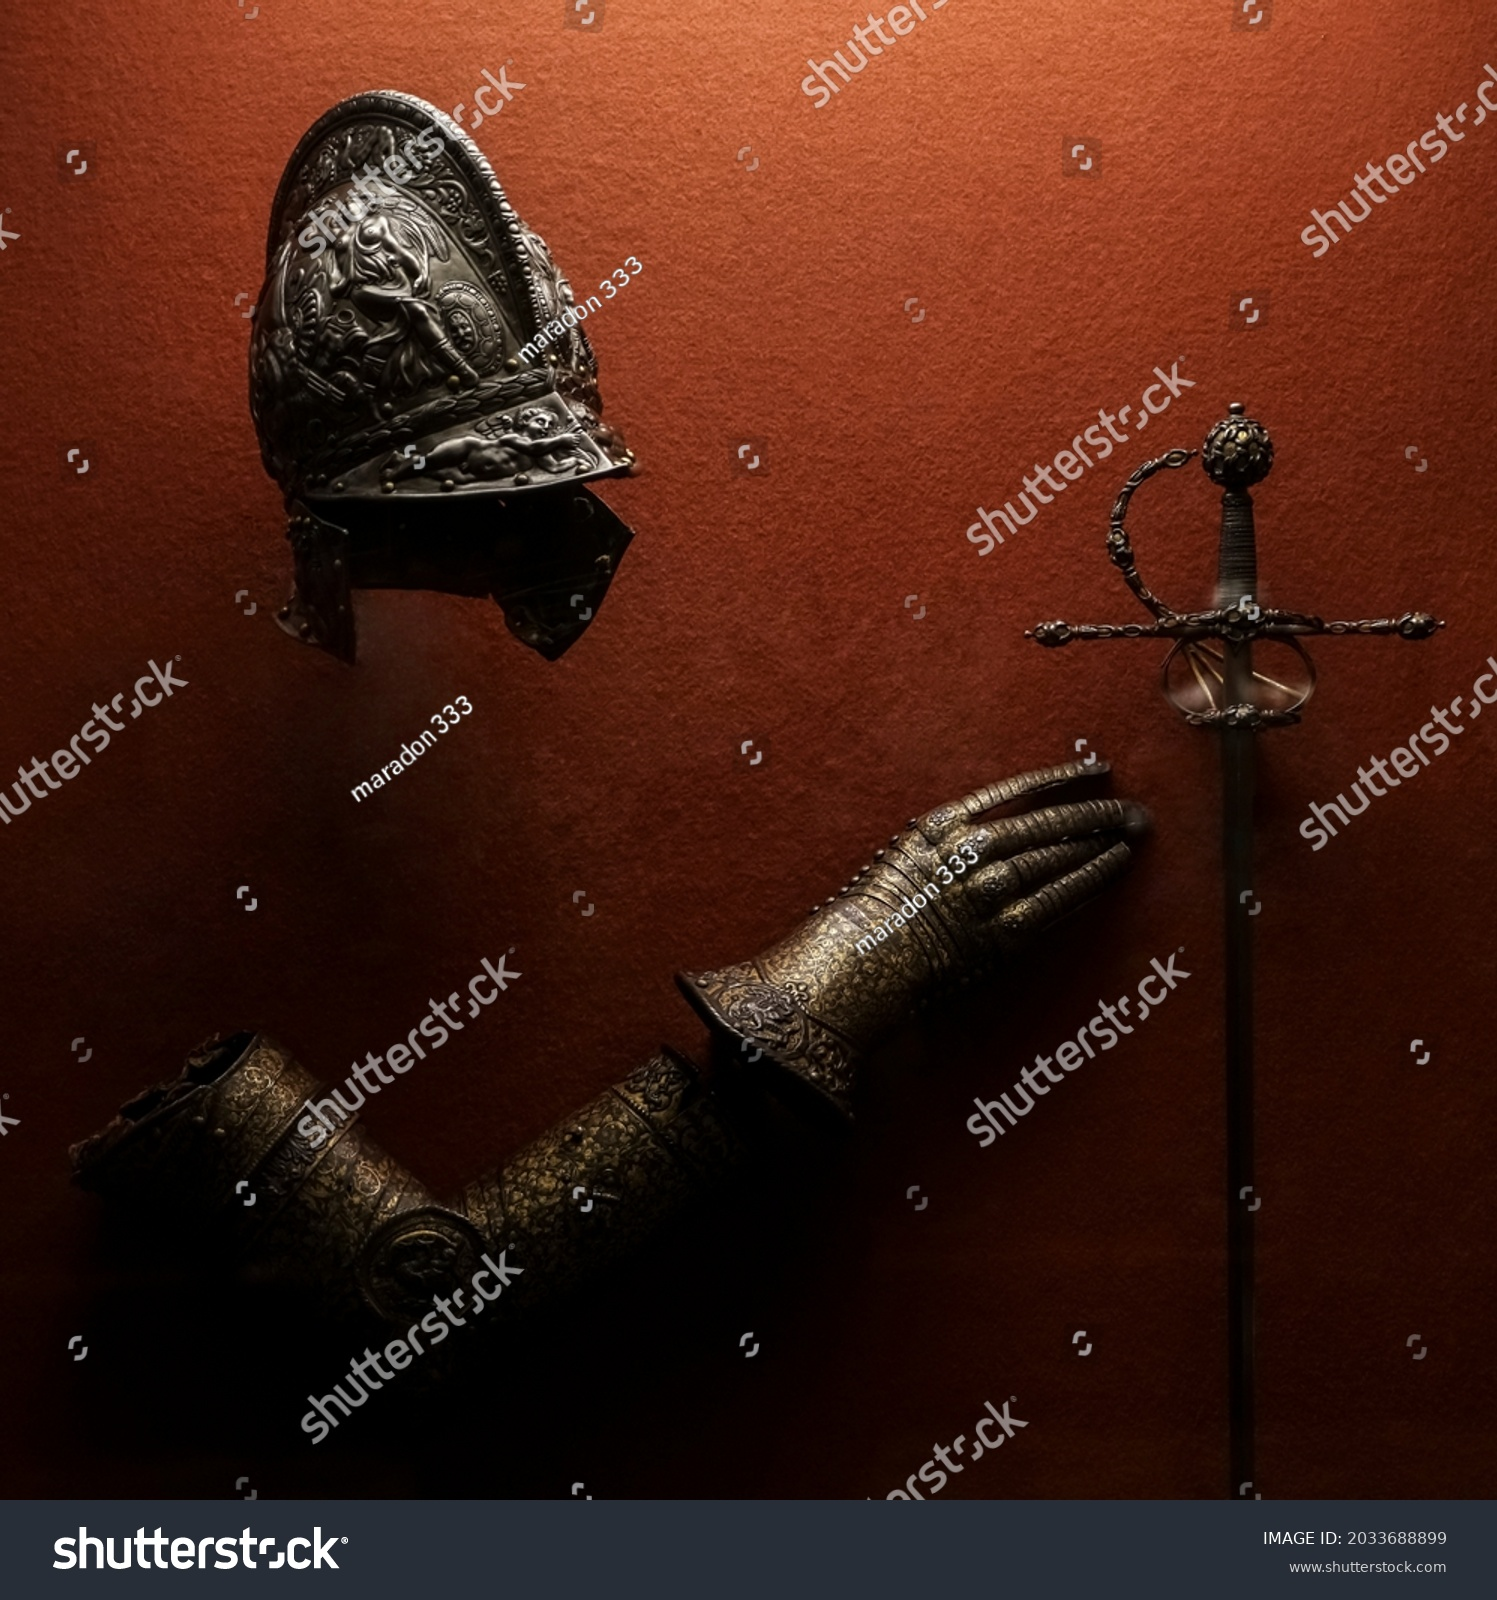 medieval armor made of wrought iron. knight helmet iron medieval age armor, decoration in historical museum.  #2033688899